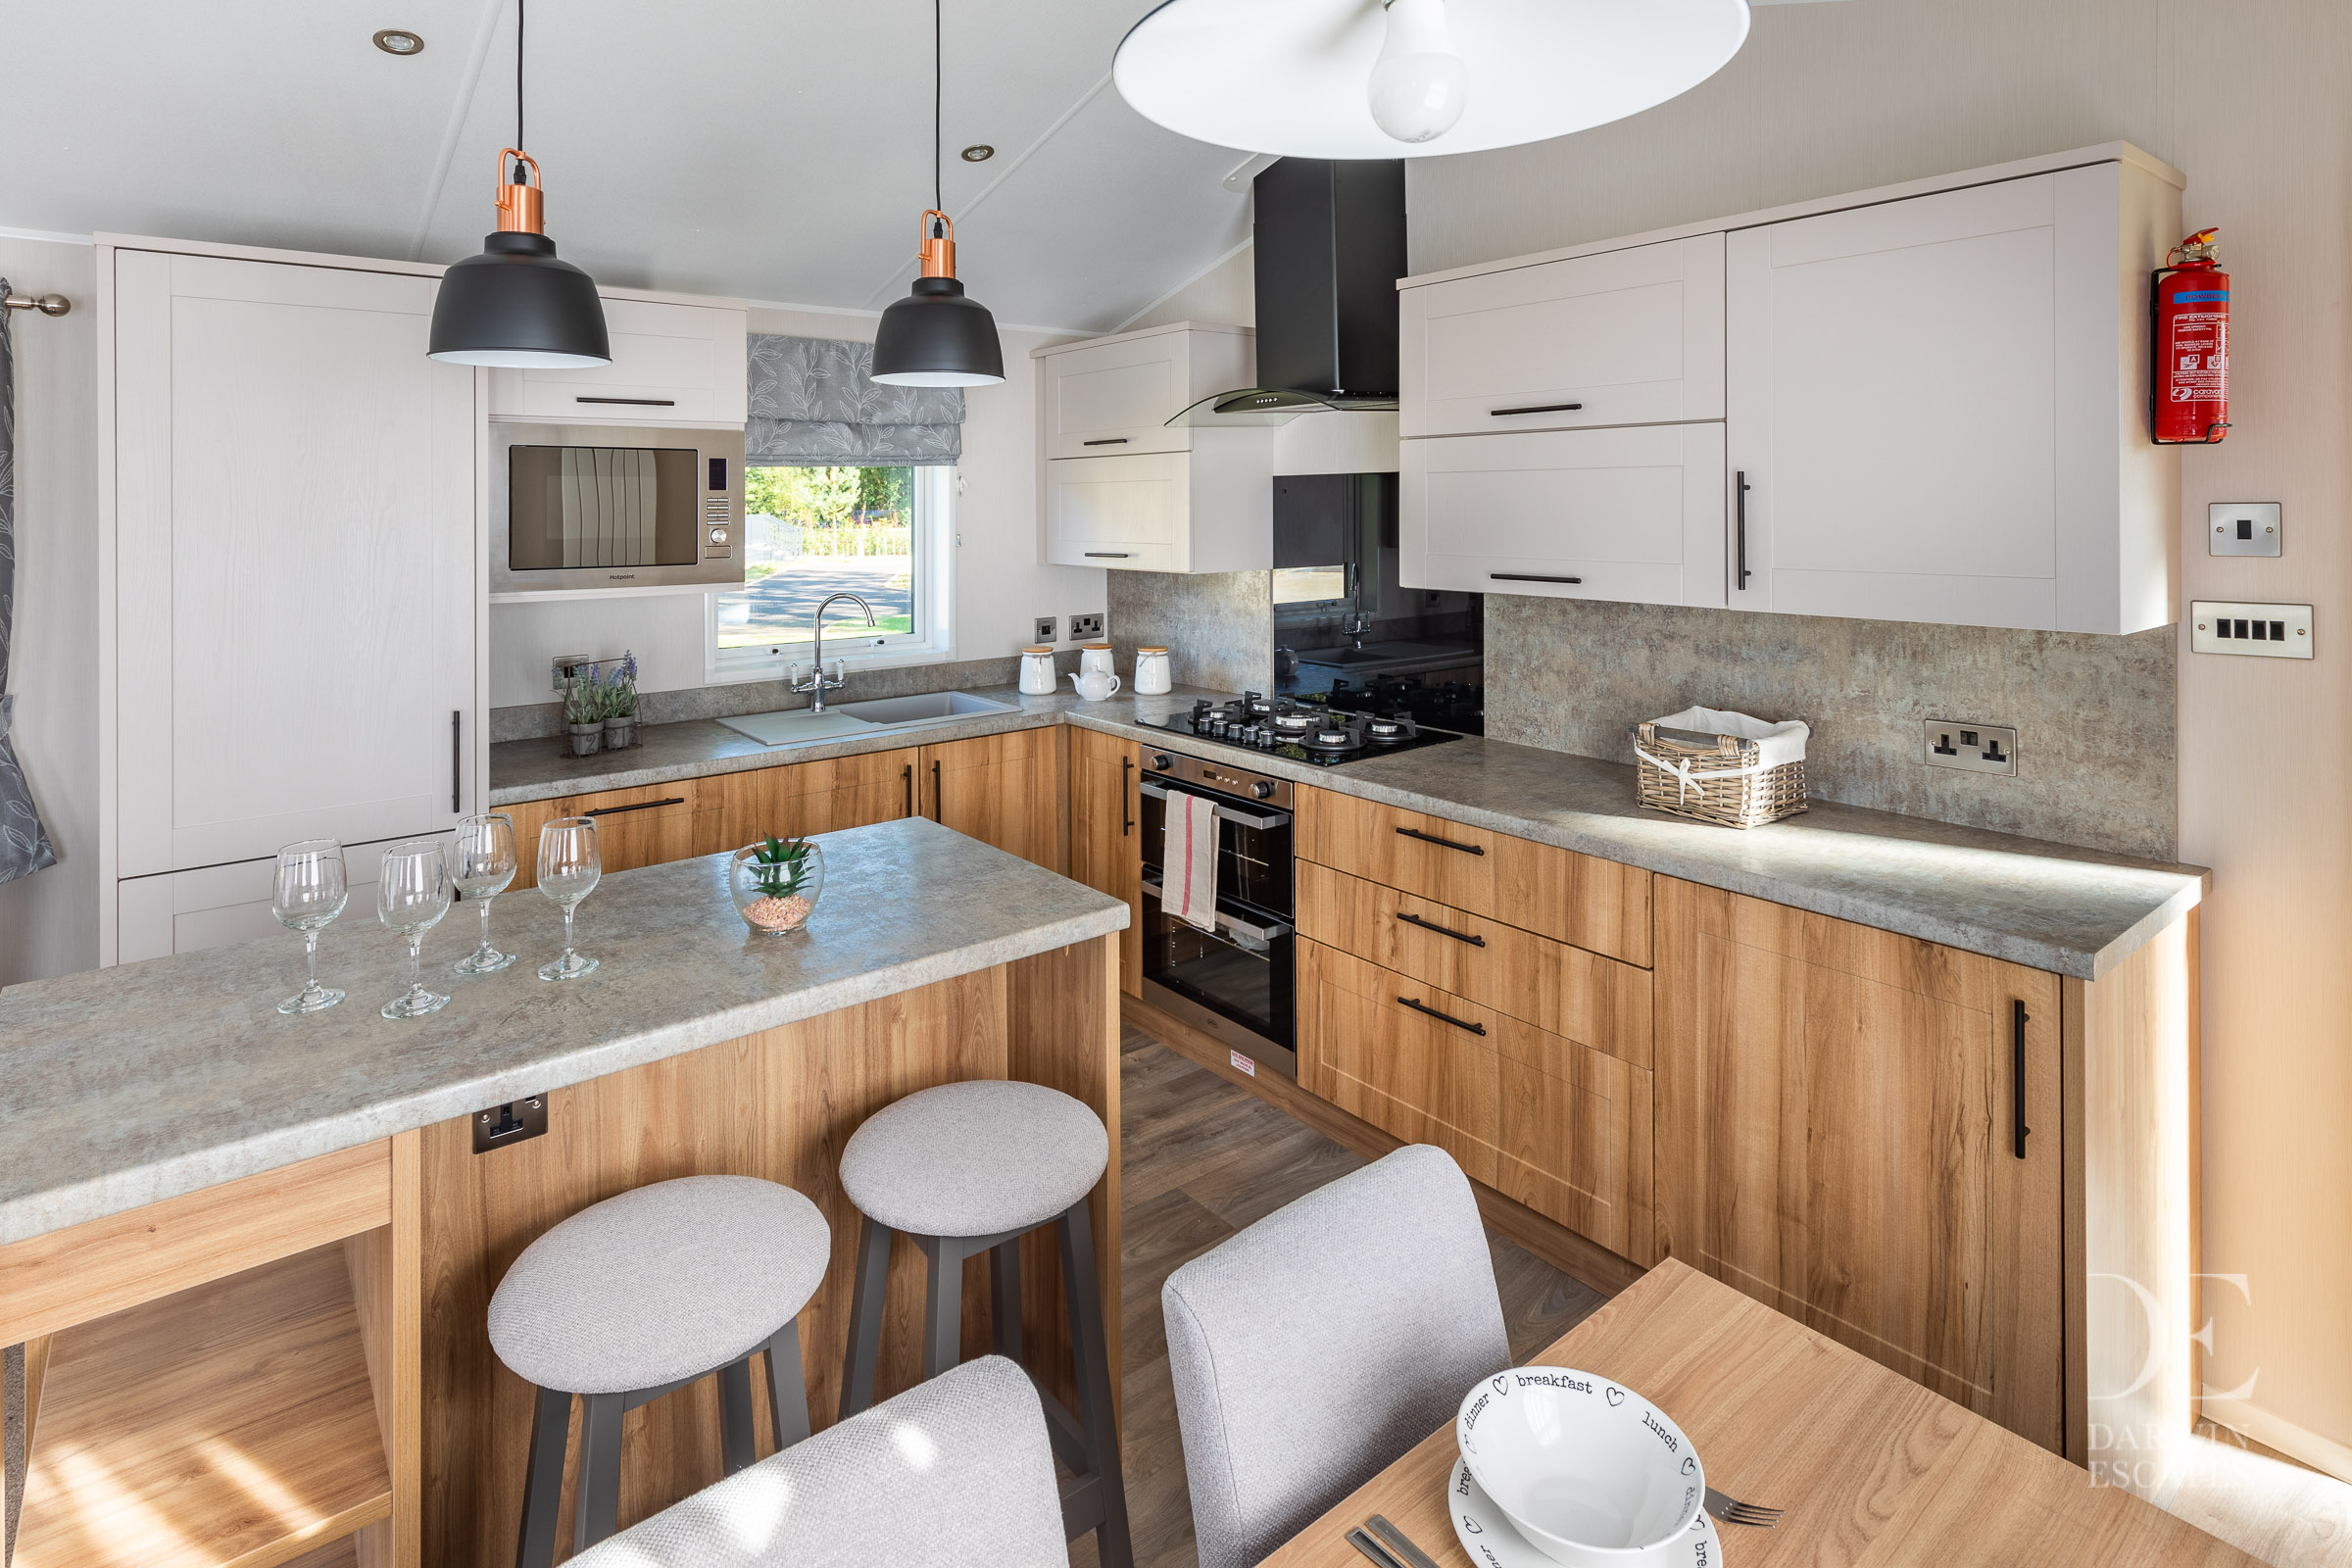 View of the kitchen in the Willerby Waverley with breakfast bar and dining table